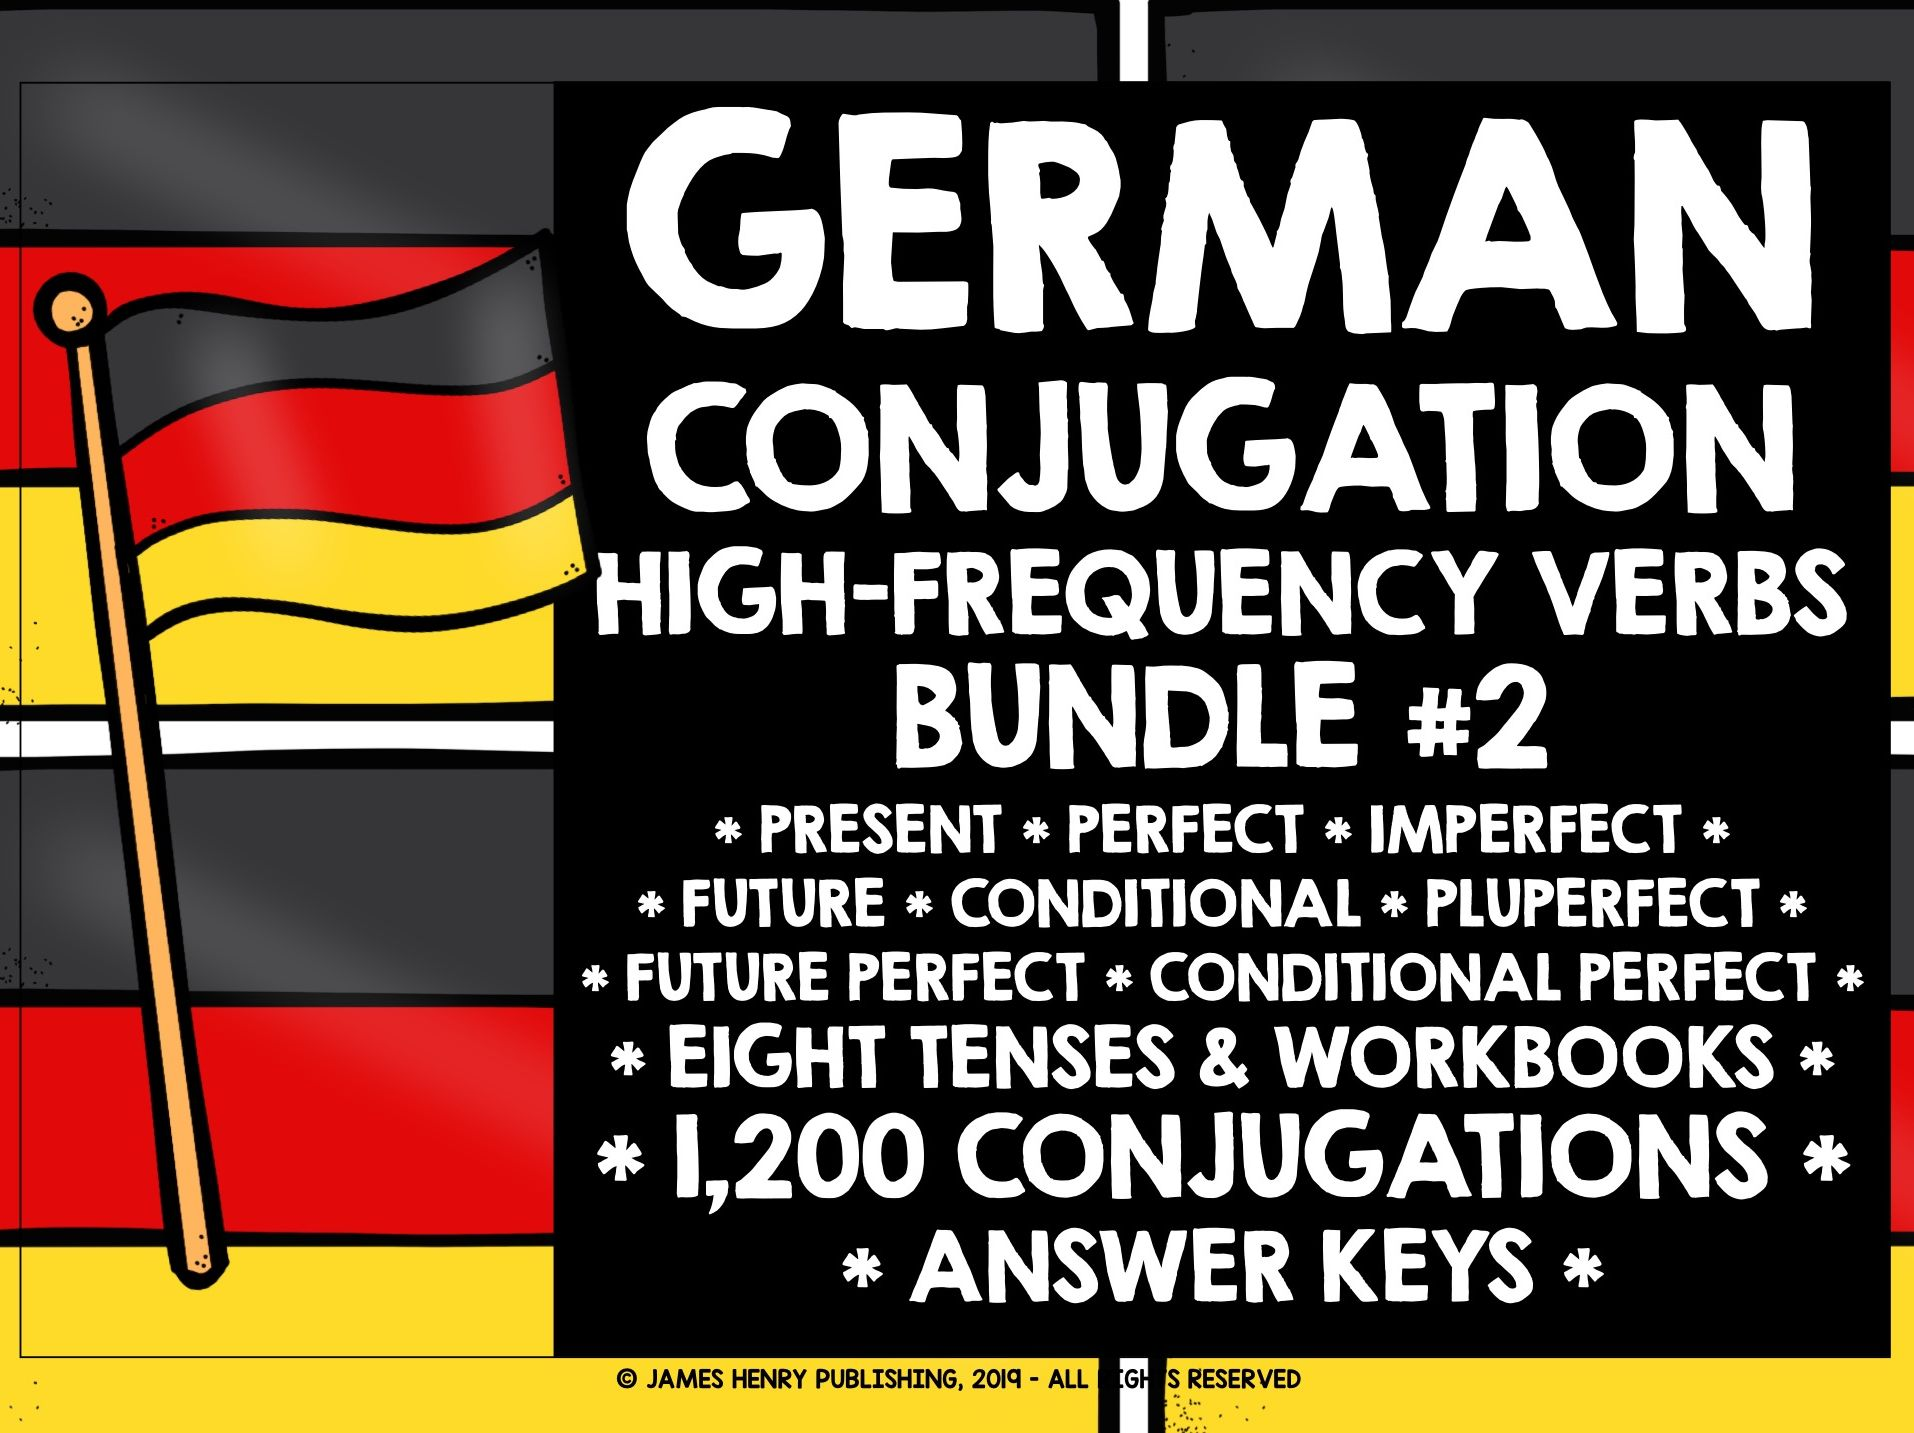 GERMAN HIGH-FREQUENCY VERBS CONJUGATION BUNDLE 2